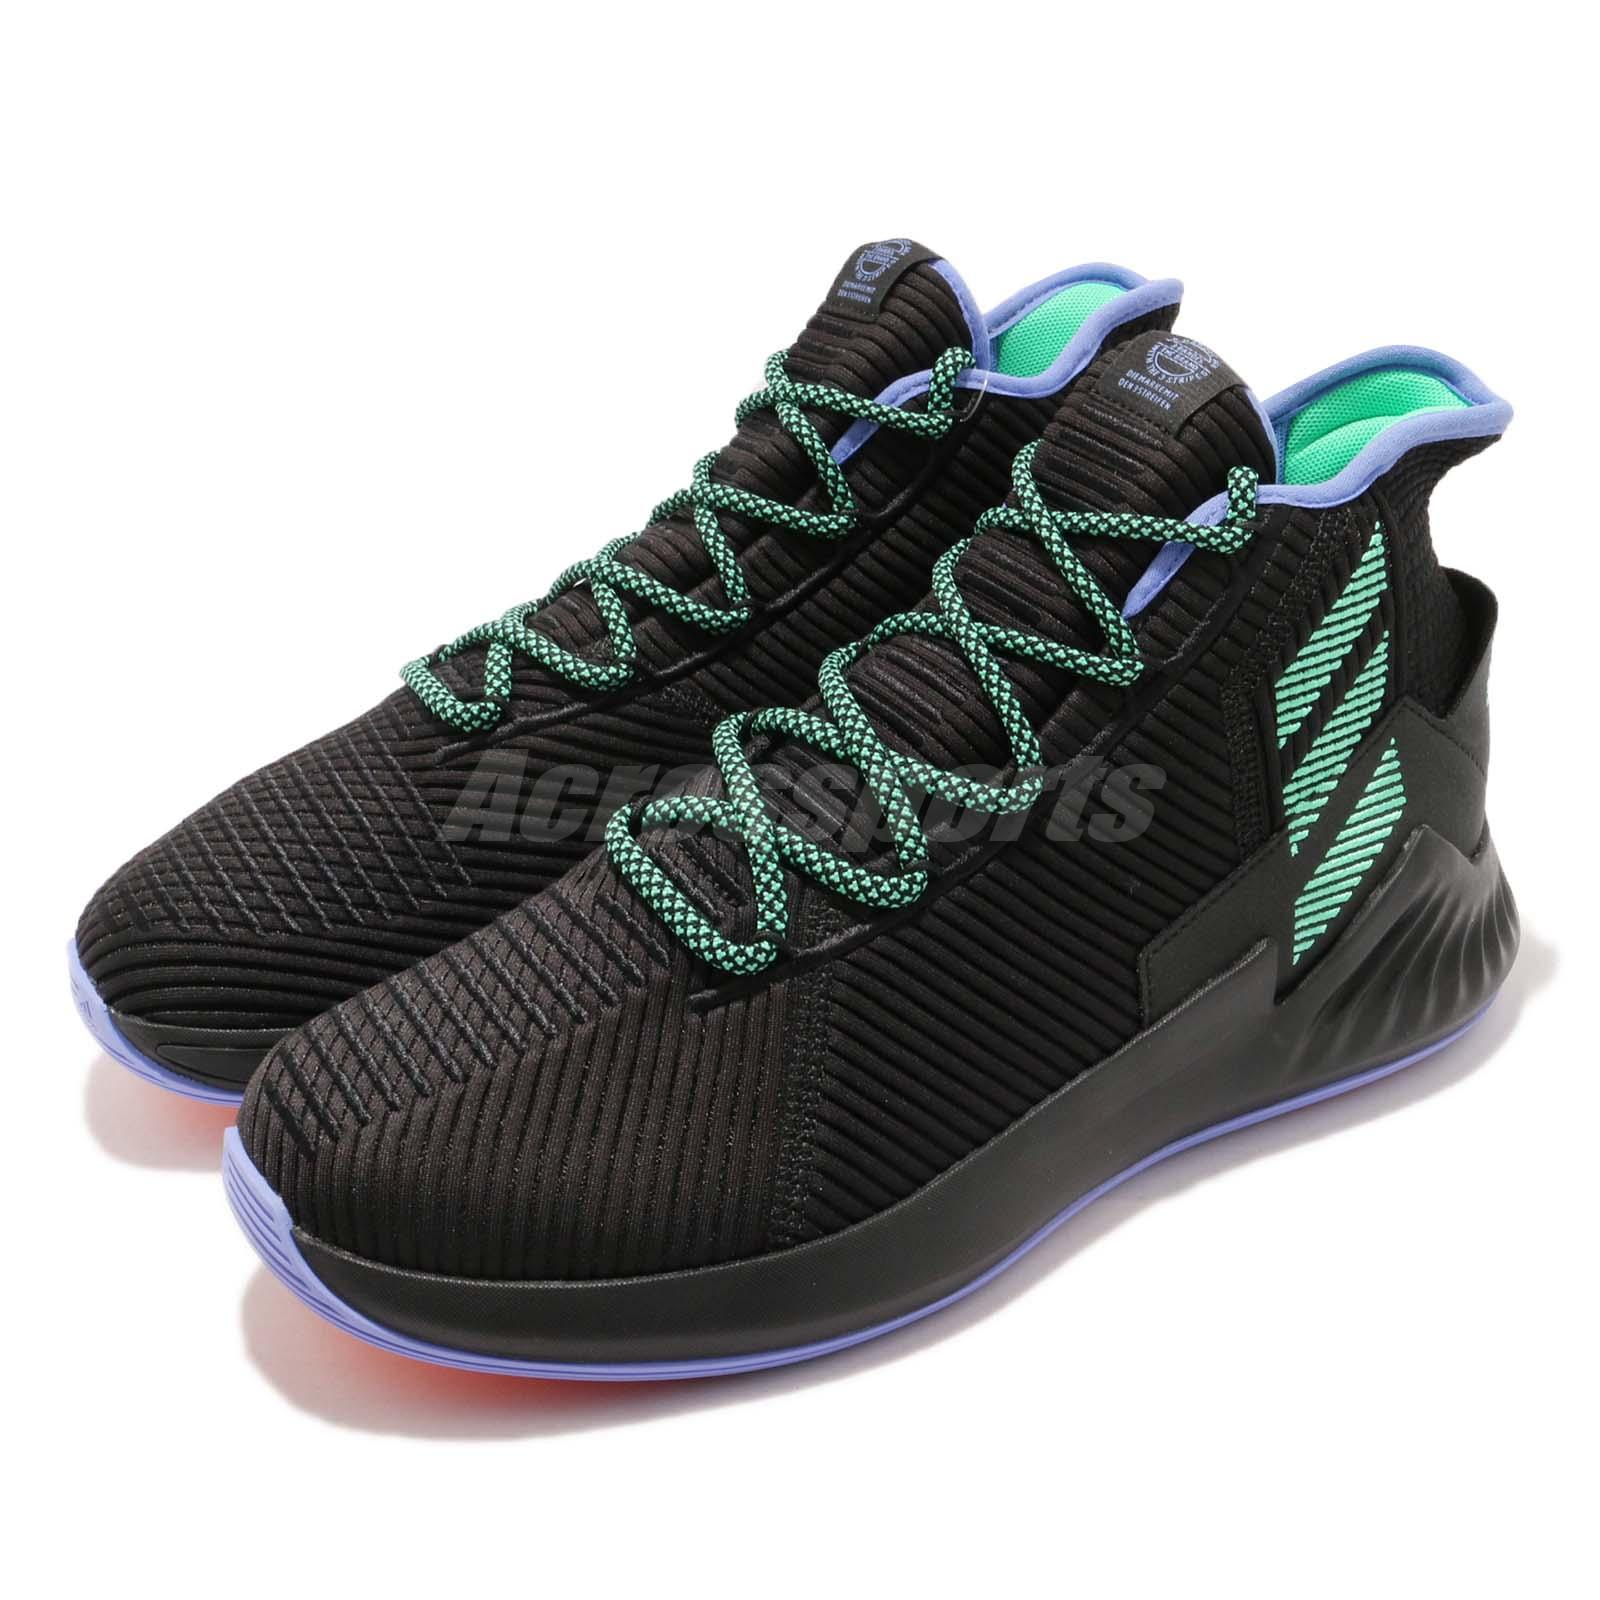 50137dac1 Details about adidas D Rose 9 Derrick Black Green Purple BOUNCE Mens  Basketball Shoes BB8018